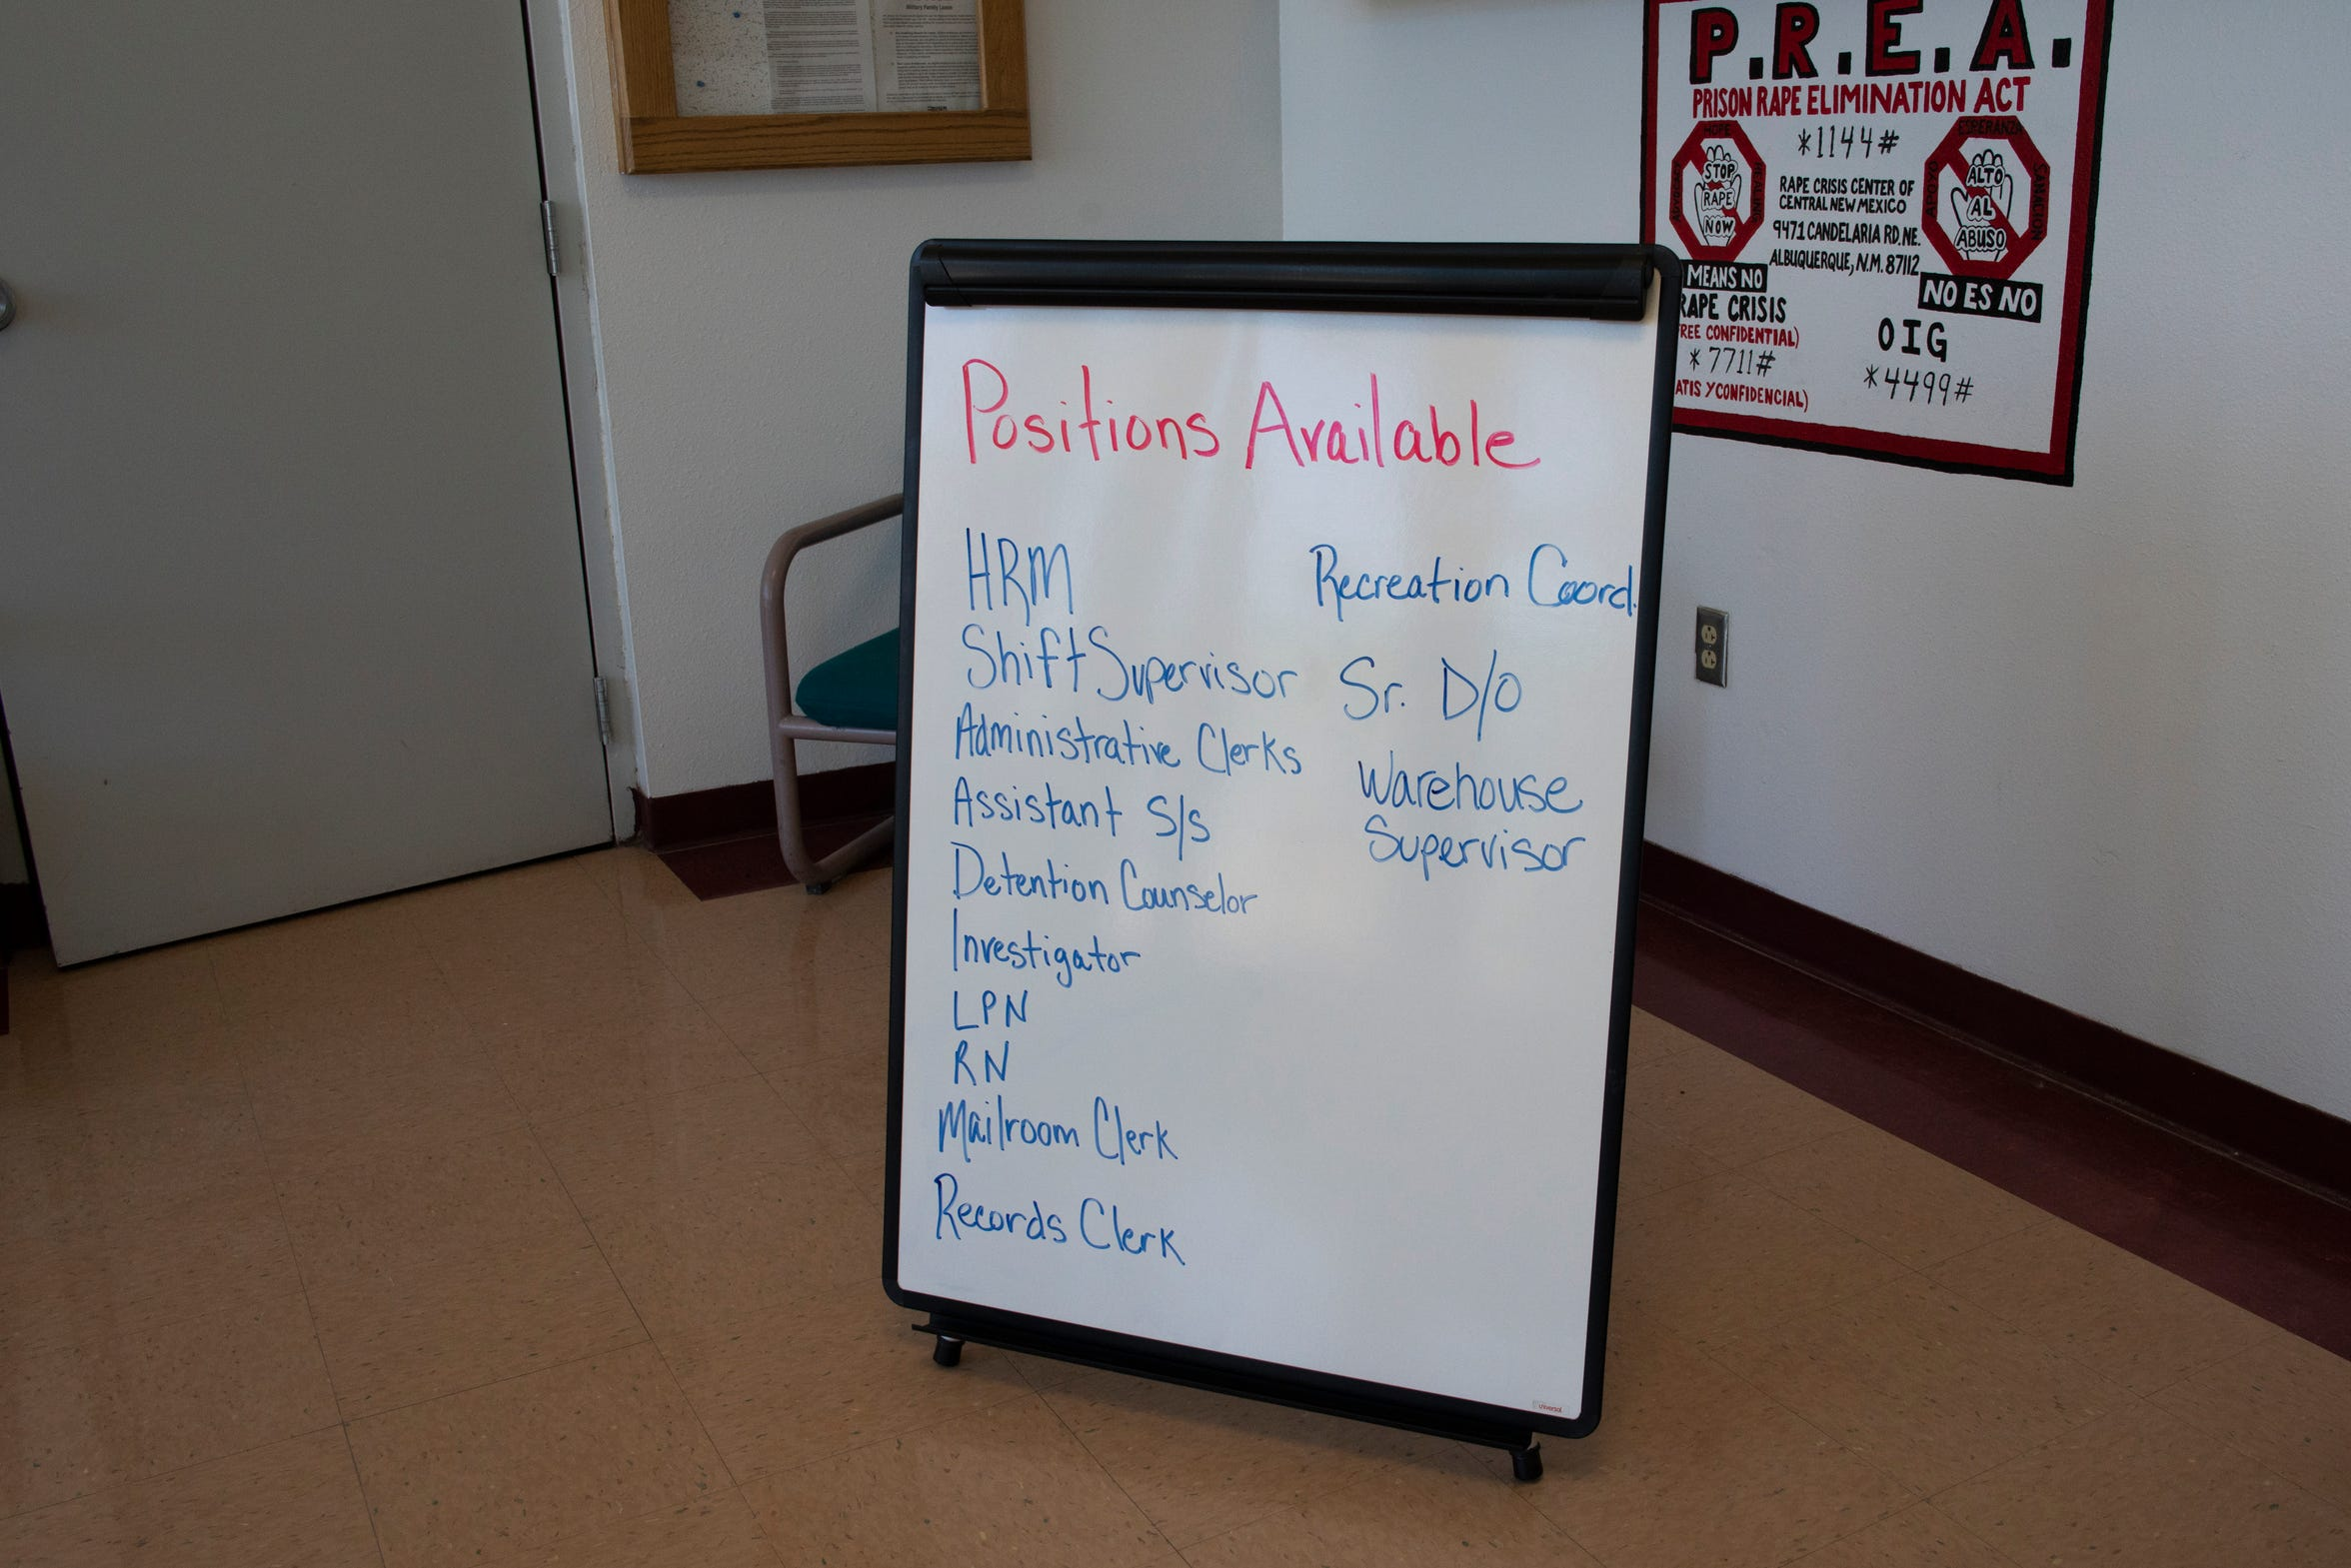 A sign, listing job openings, is displayed inside the reception area at the Torrance County Detention Facility in Estancia.